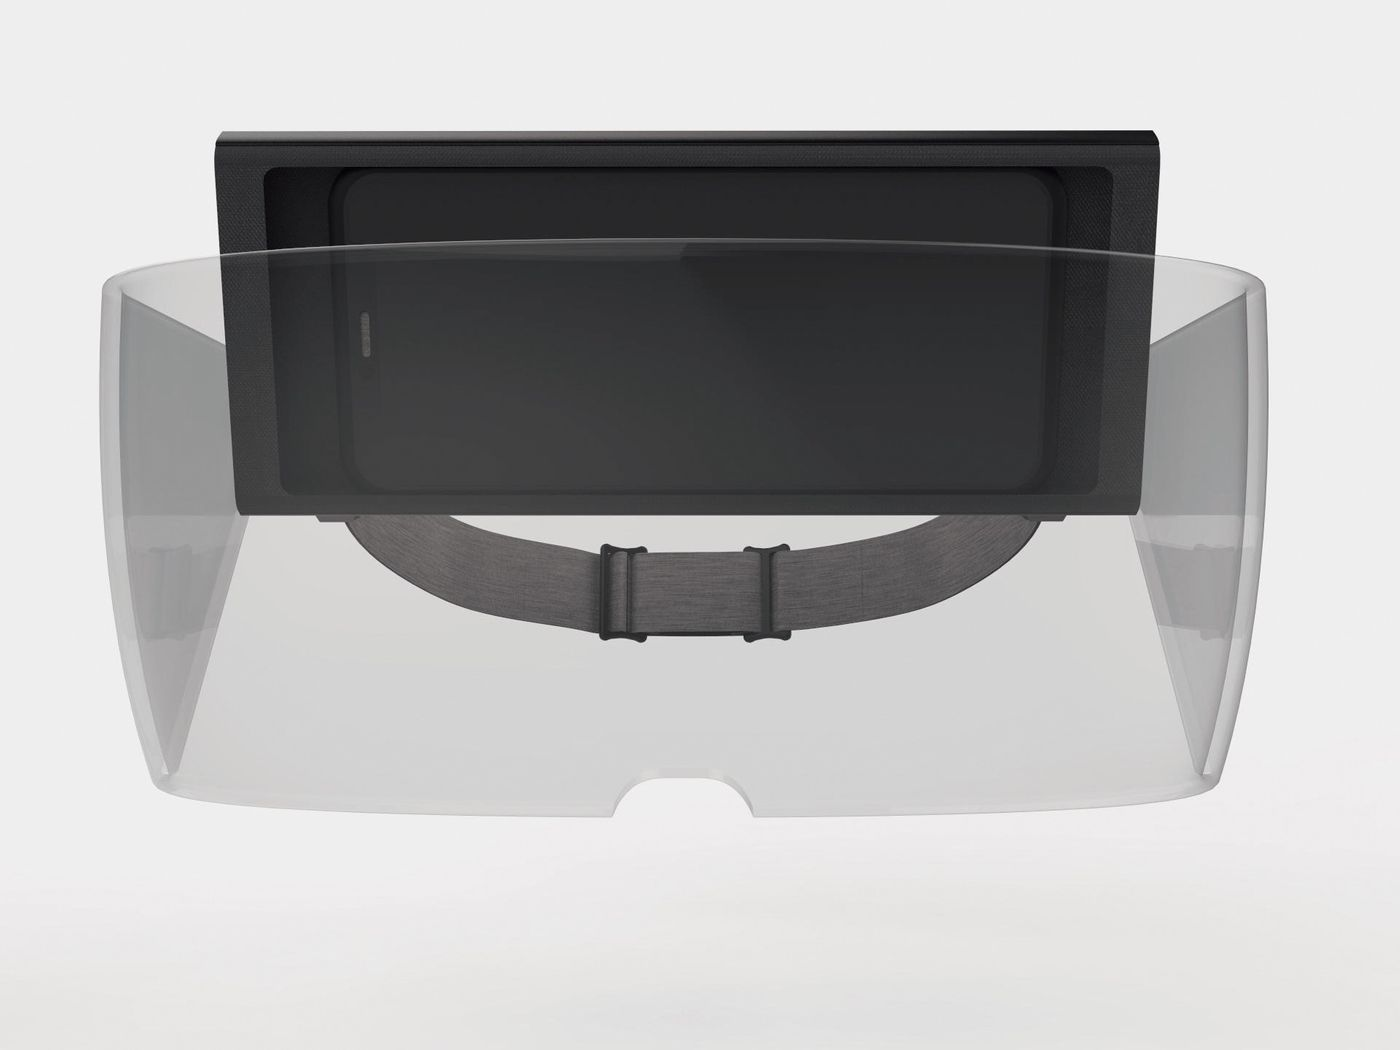 ARkid, Augmented Reality Viewer